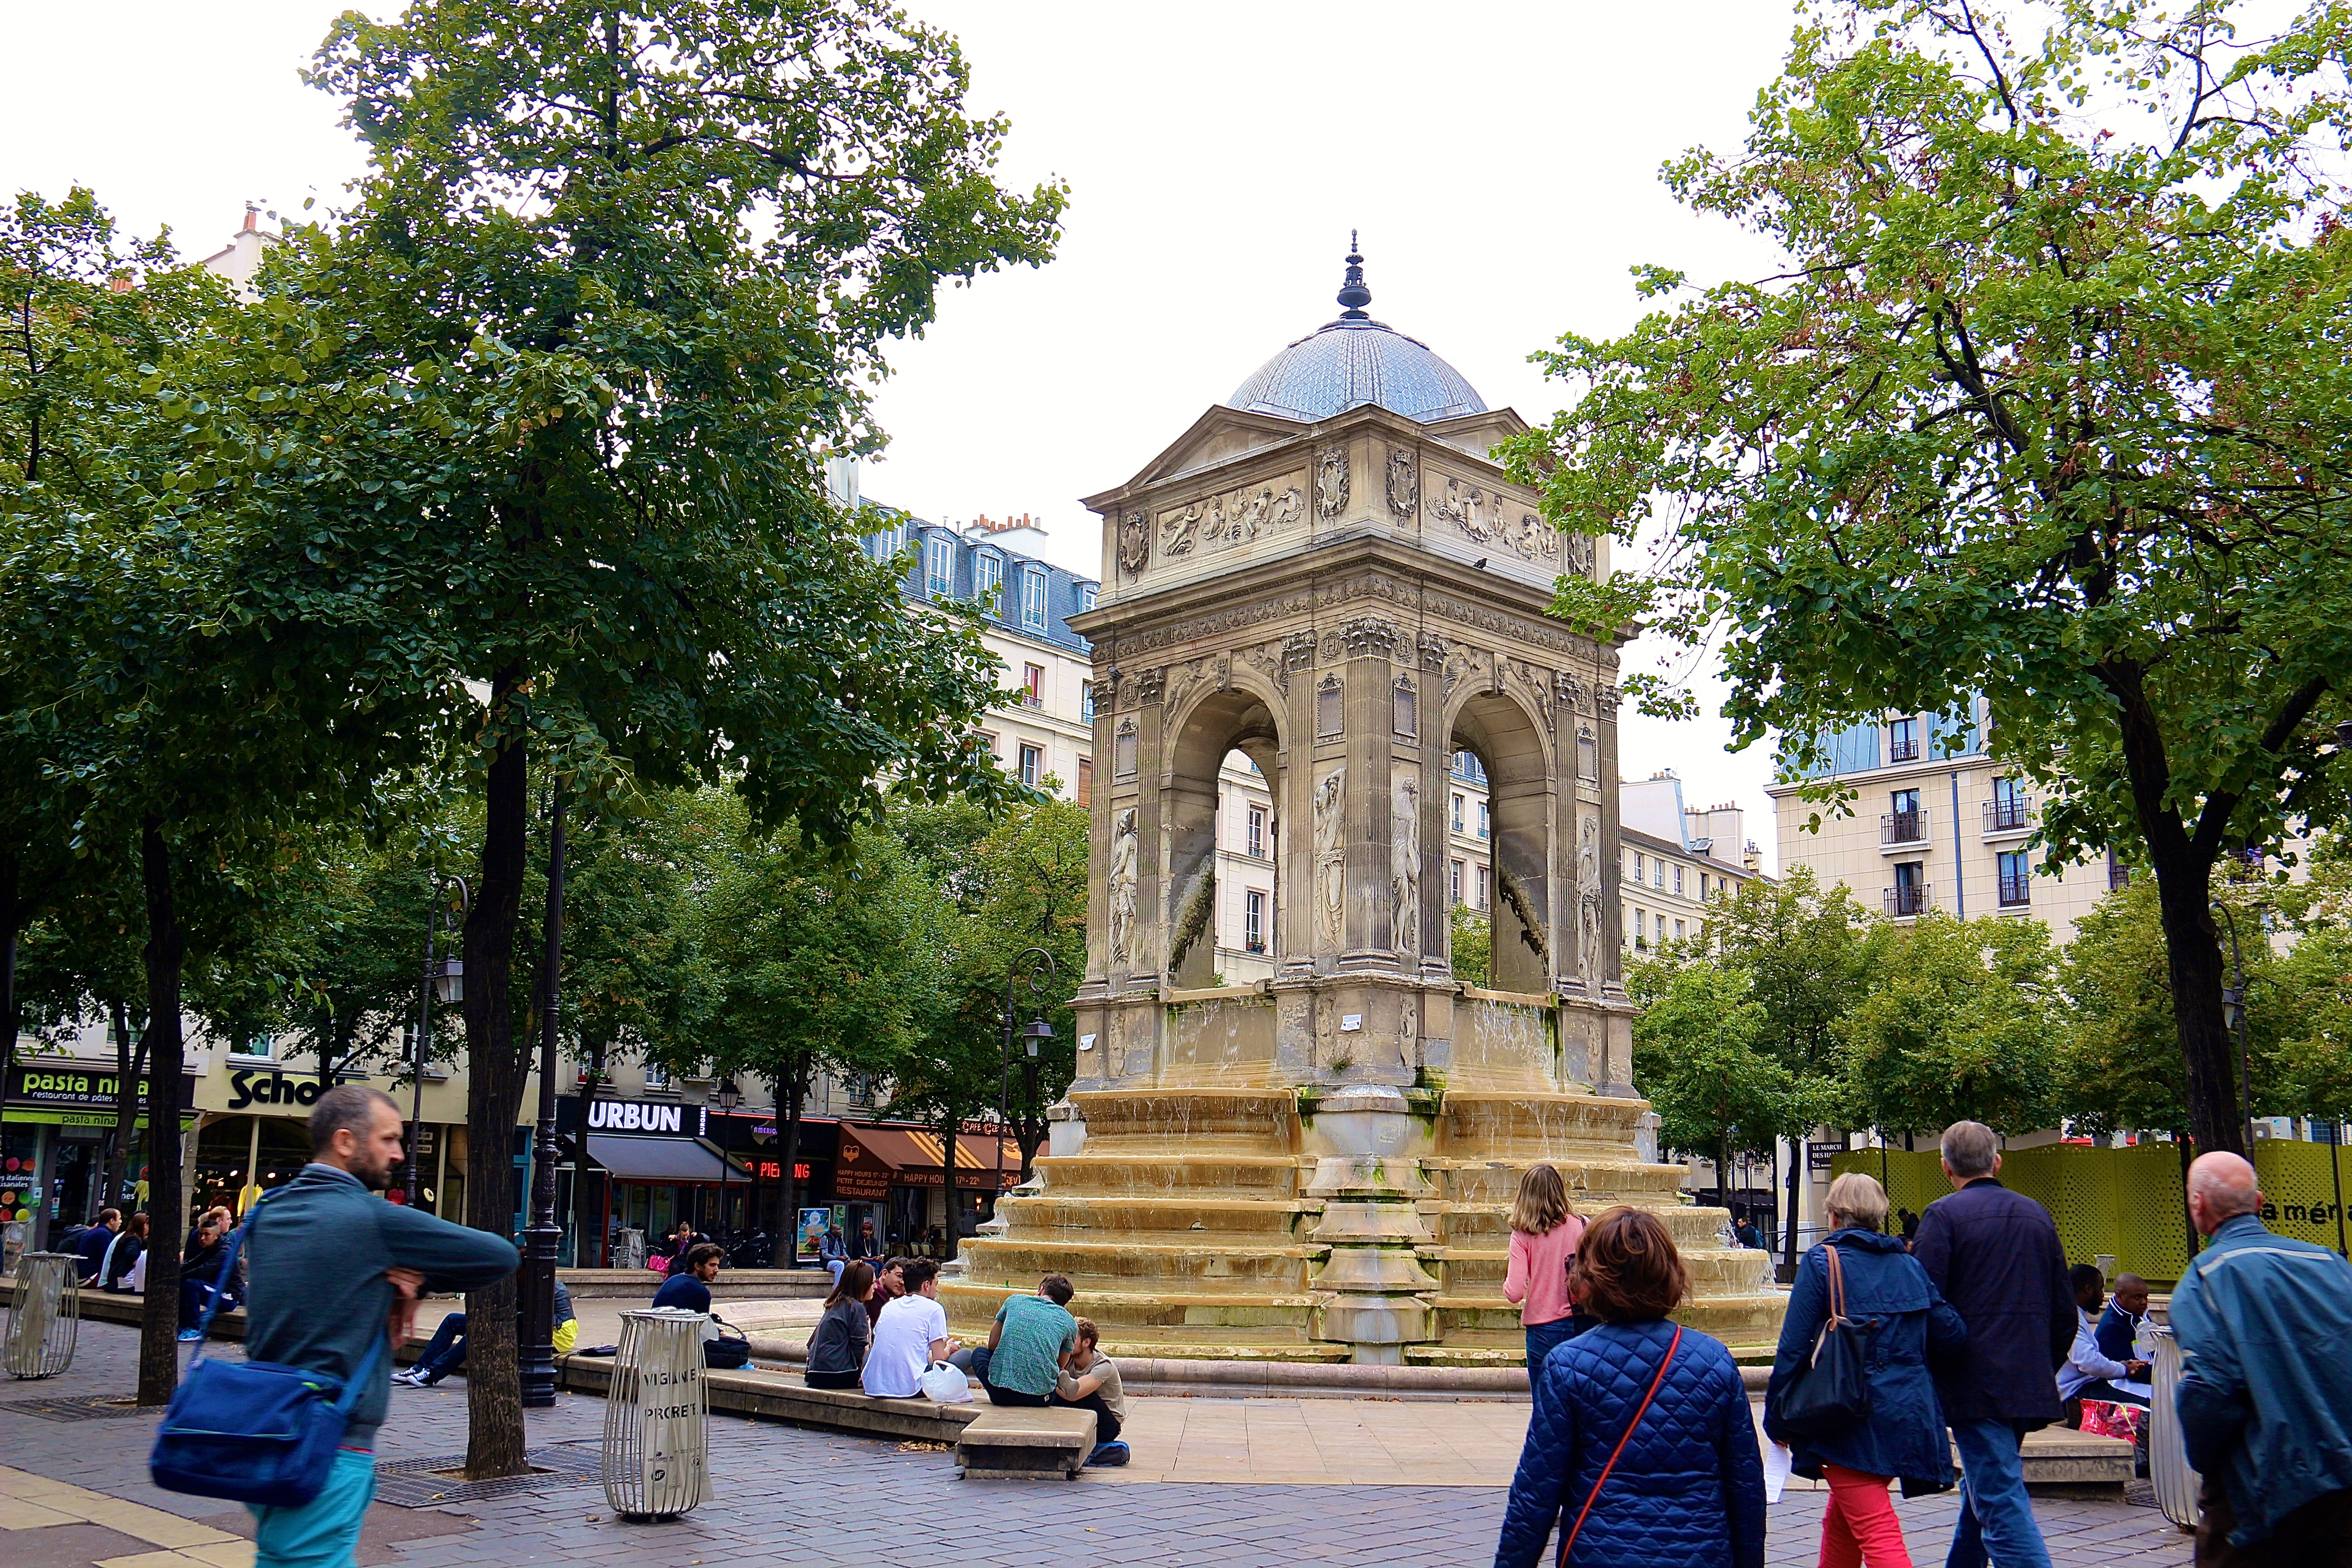 la Fontaine des Innocents